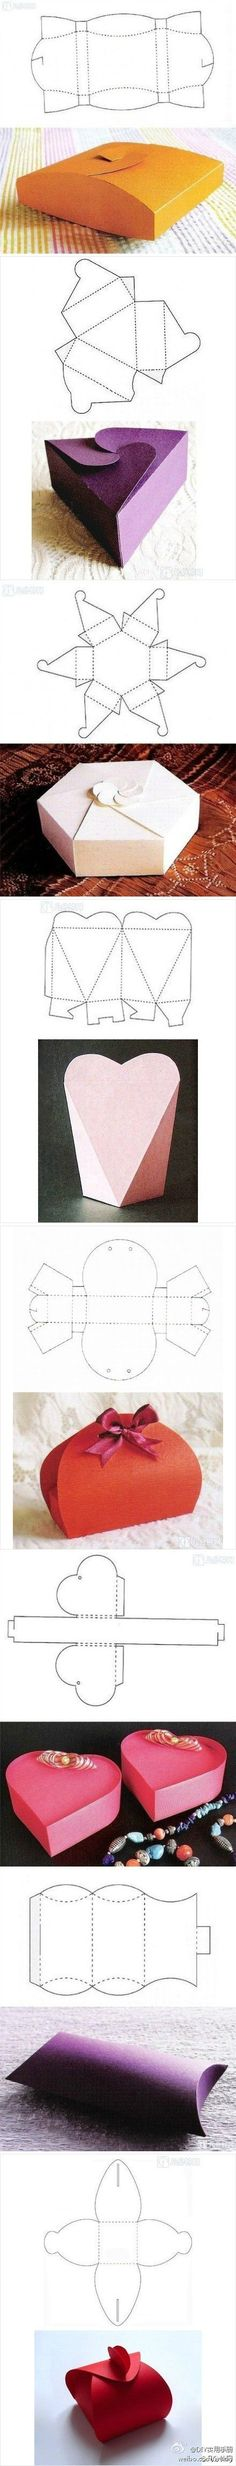 """DIY boxes - Imgur So neat, great for giving gifts I think. Make it special with a """"simple"""" box you do all by yourself!"""